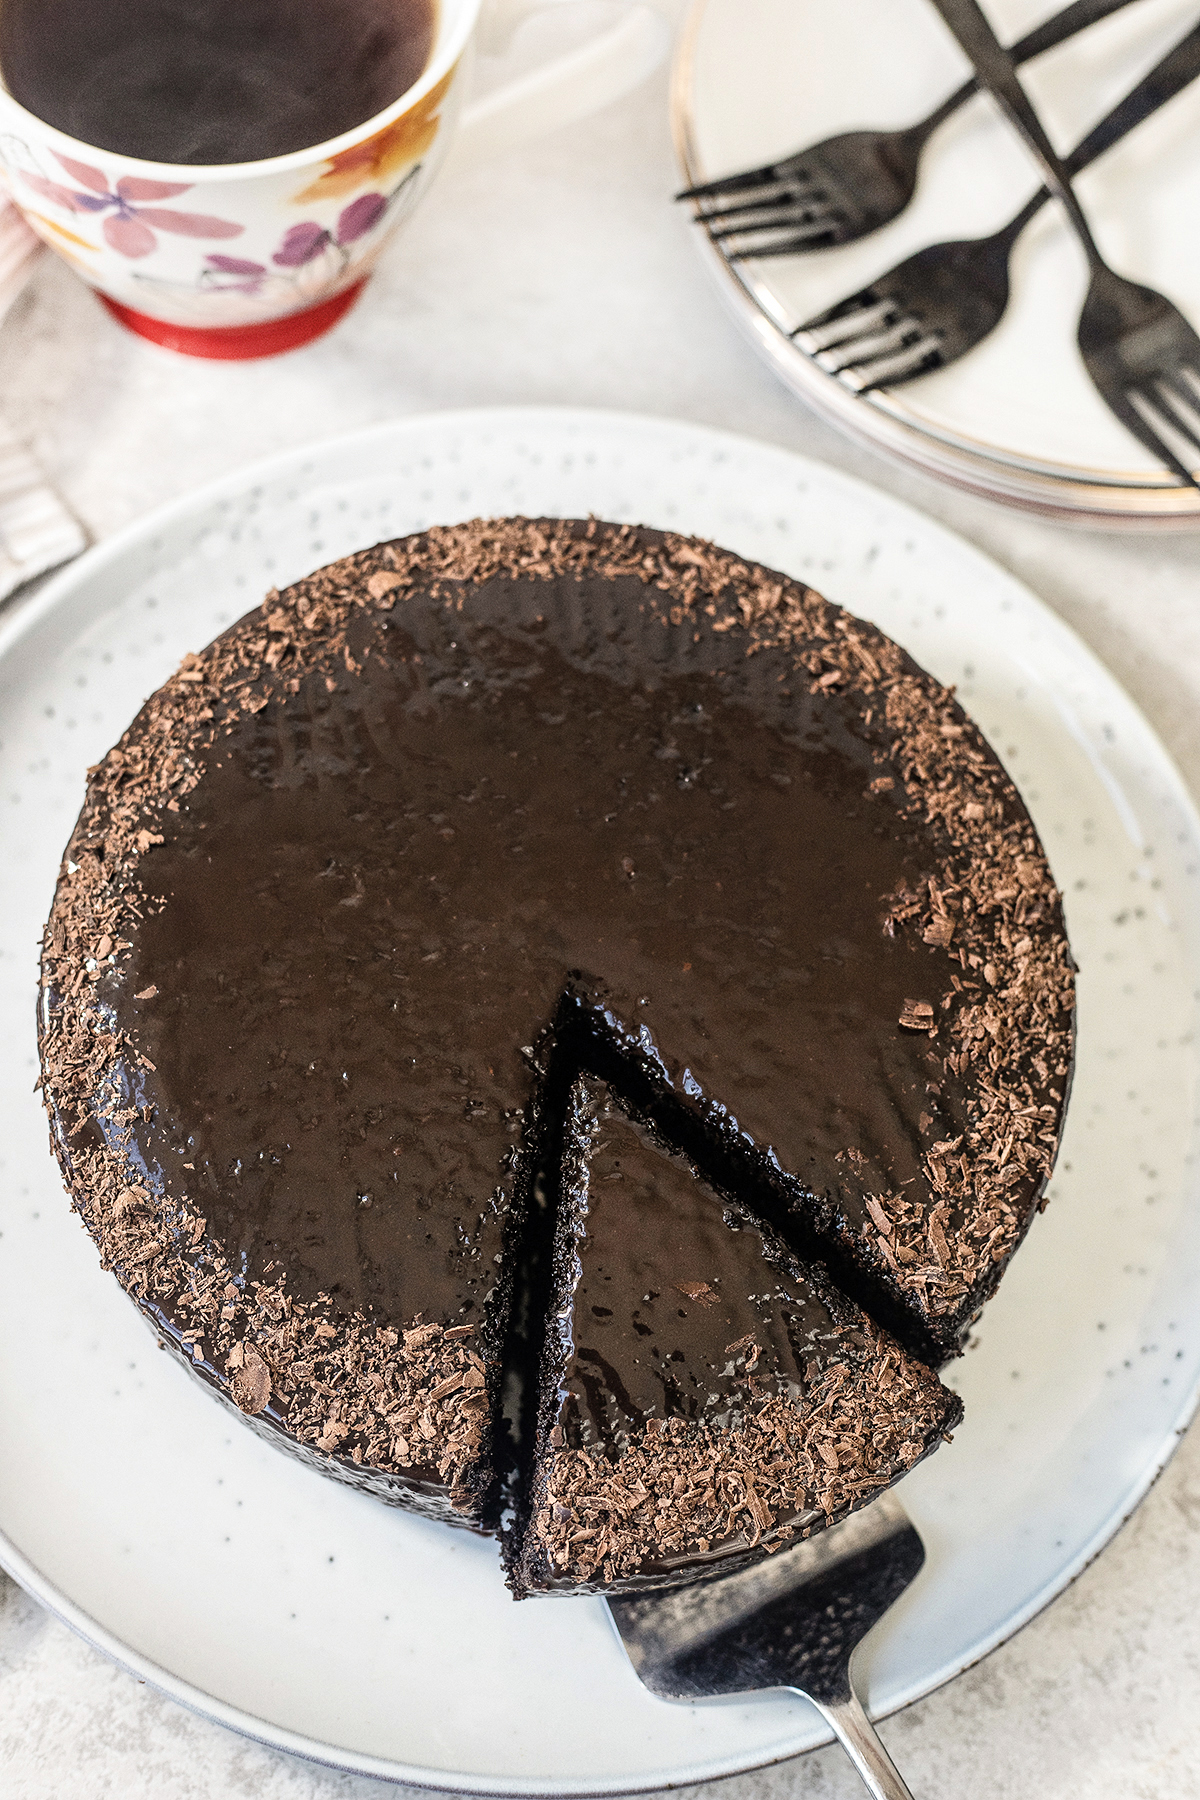 easy chocolate cake that only needs 3 ingredients!